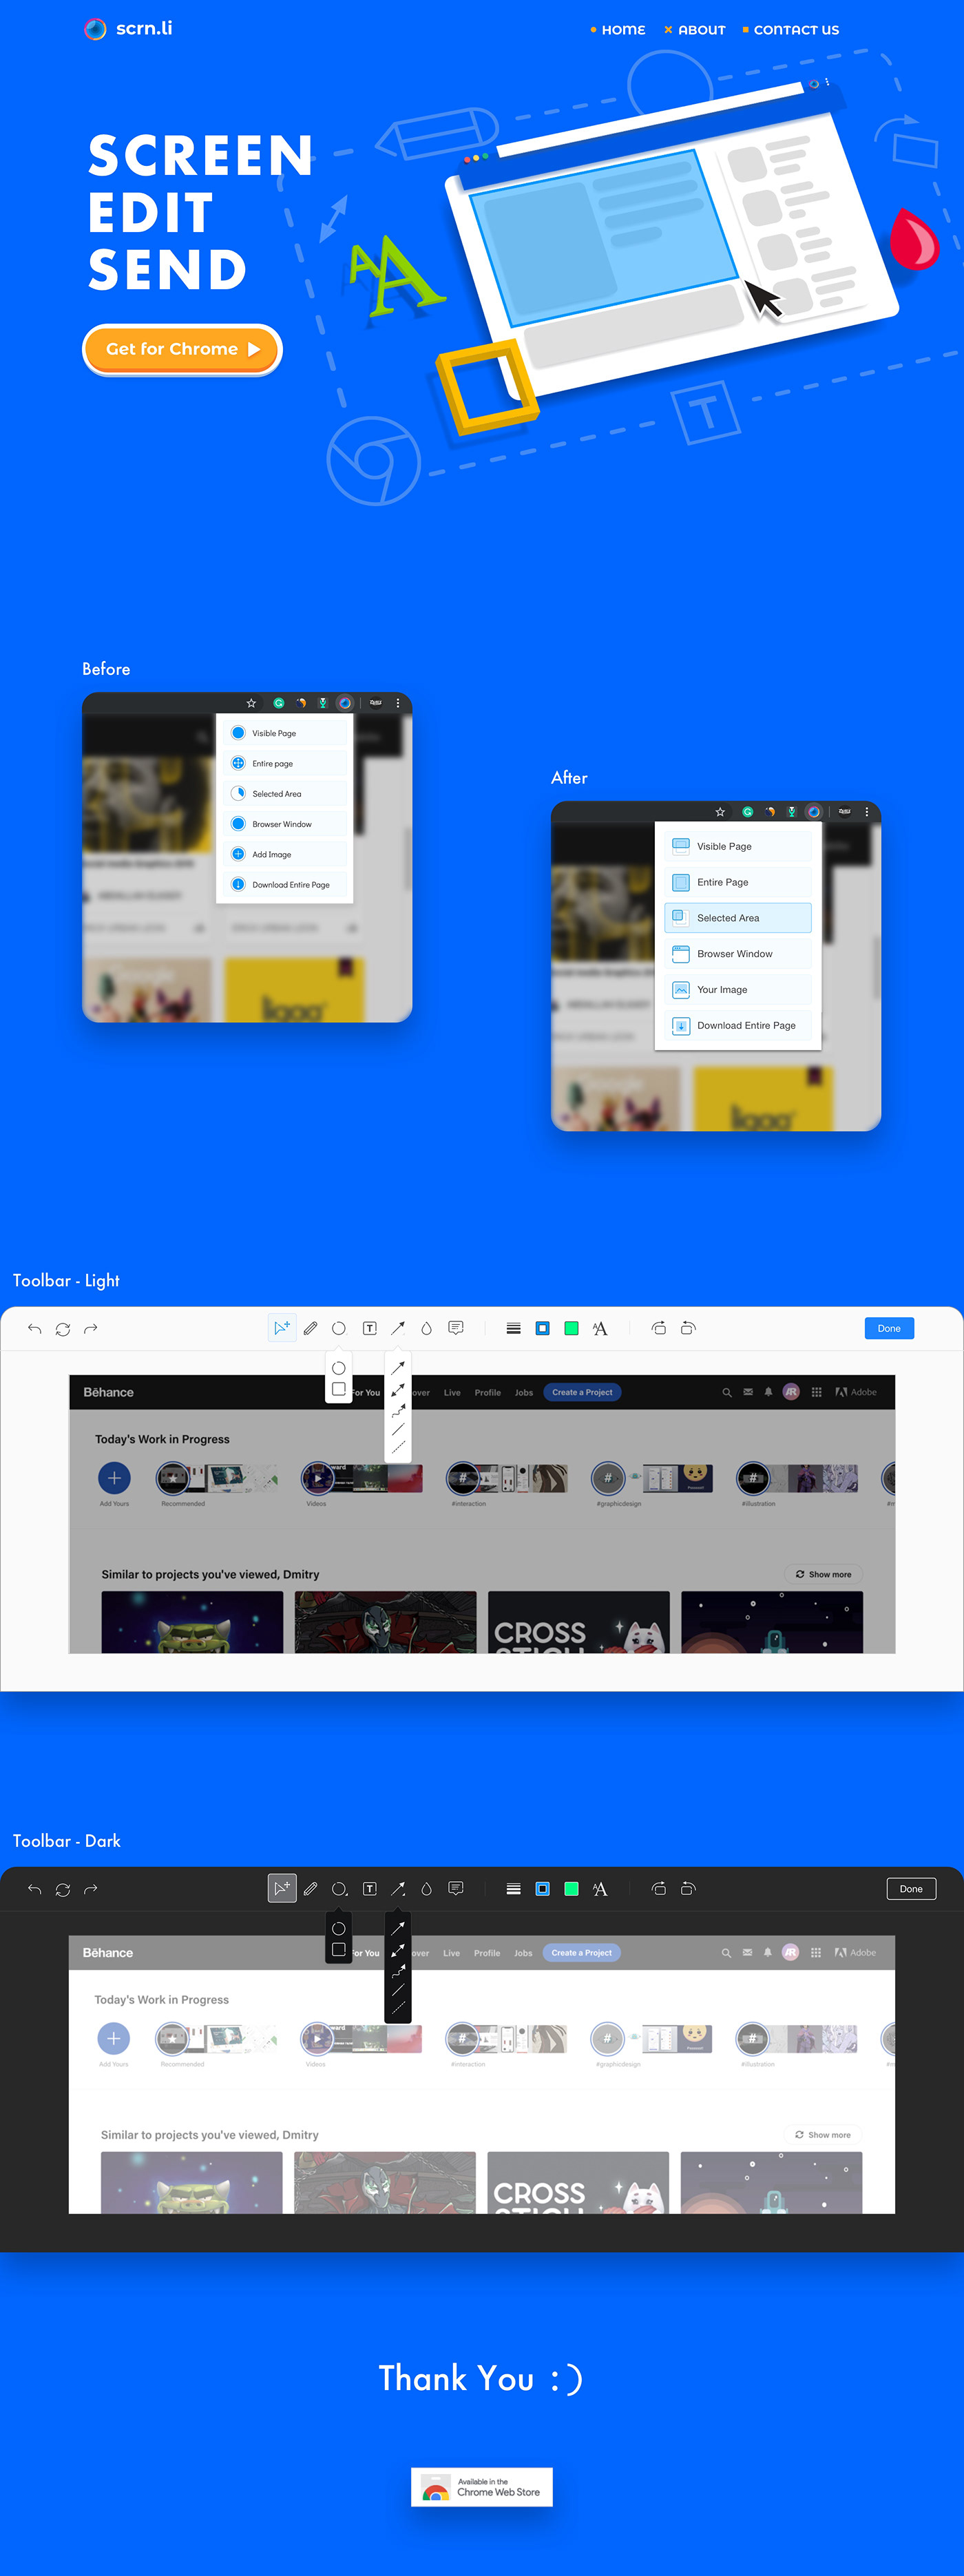 redesign scrnli chrome-extension uiux toolbar Popup UserInterface screenshot icons Perspective